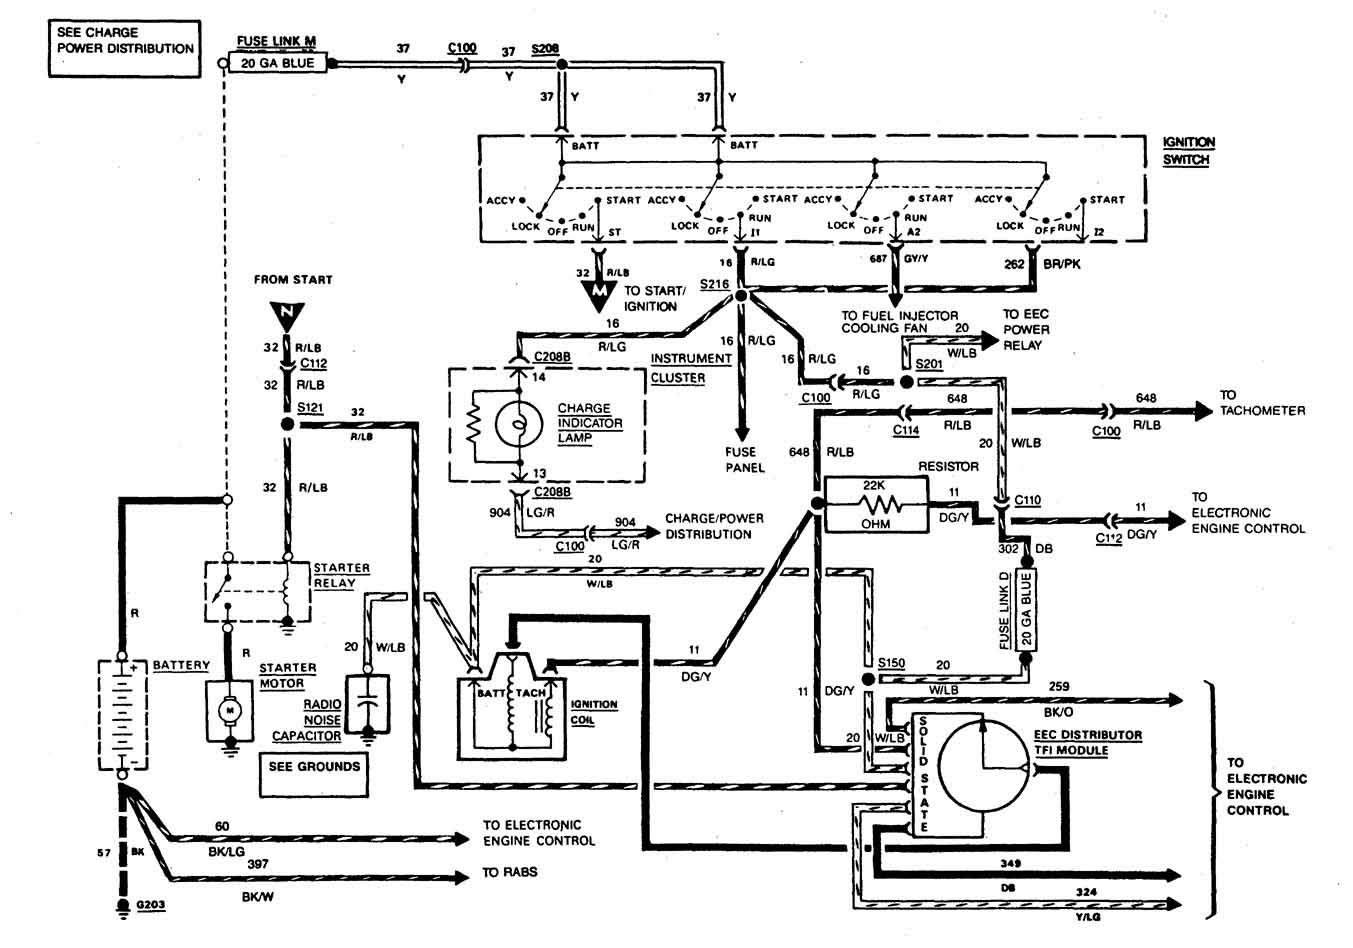 85 Ford F 150 Wiring Diagram Wiring Diagram Component A Component A Consorziofiuggiturismo It